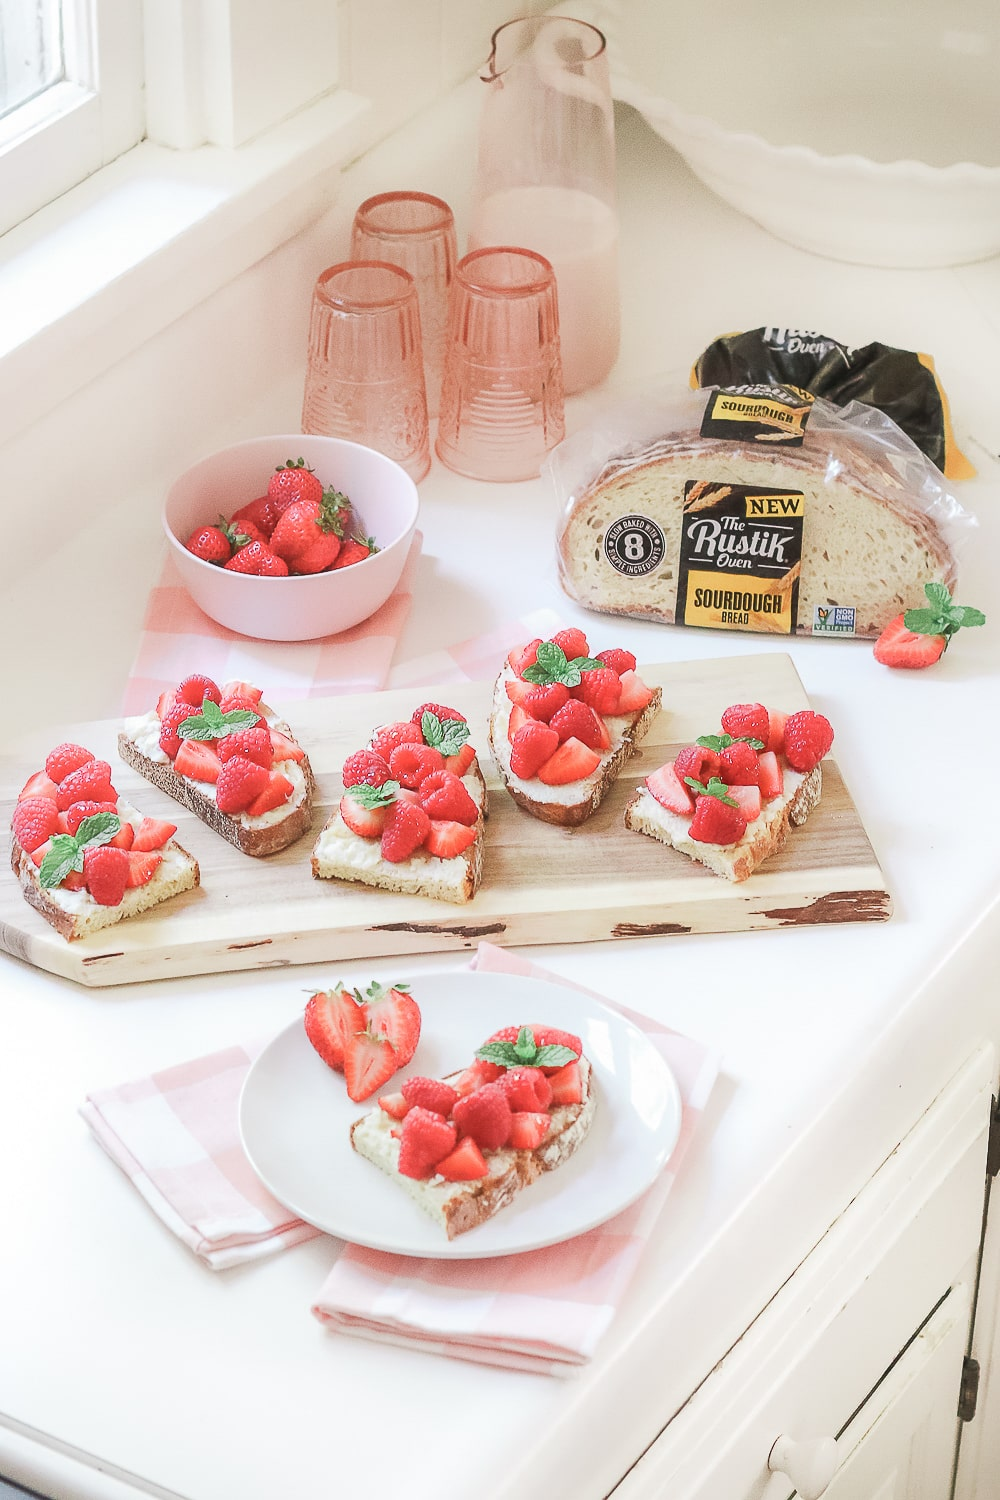 Blogger Stephanie Ziajka shares one of her favorite toast recipes for breakfast on Diary of a Debutante